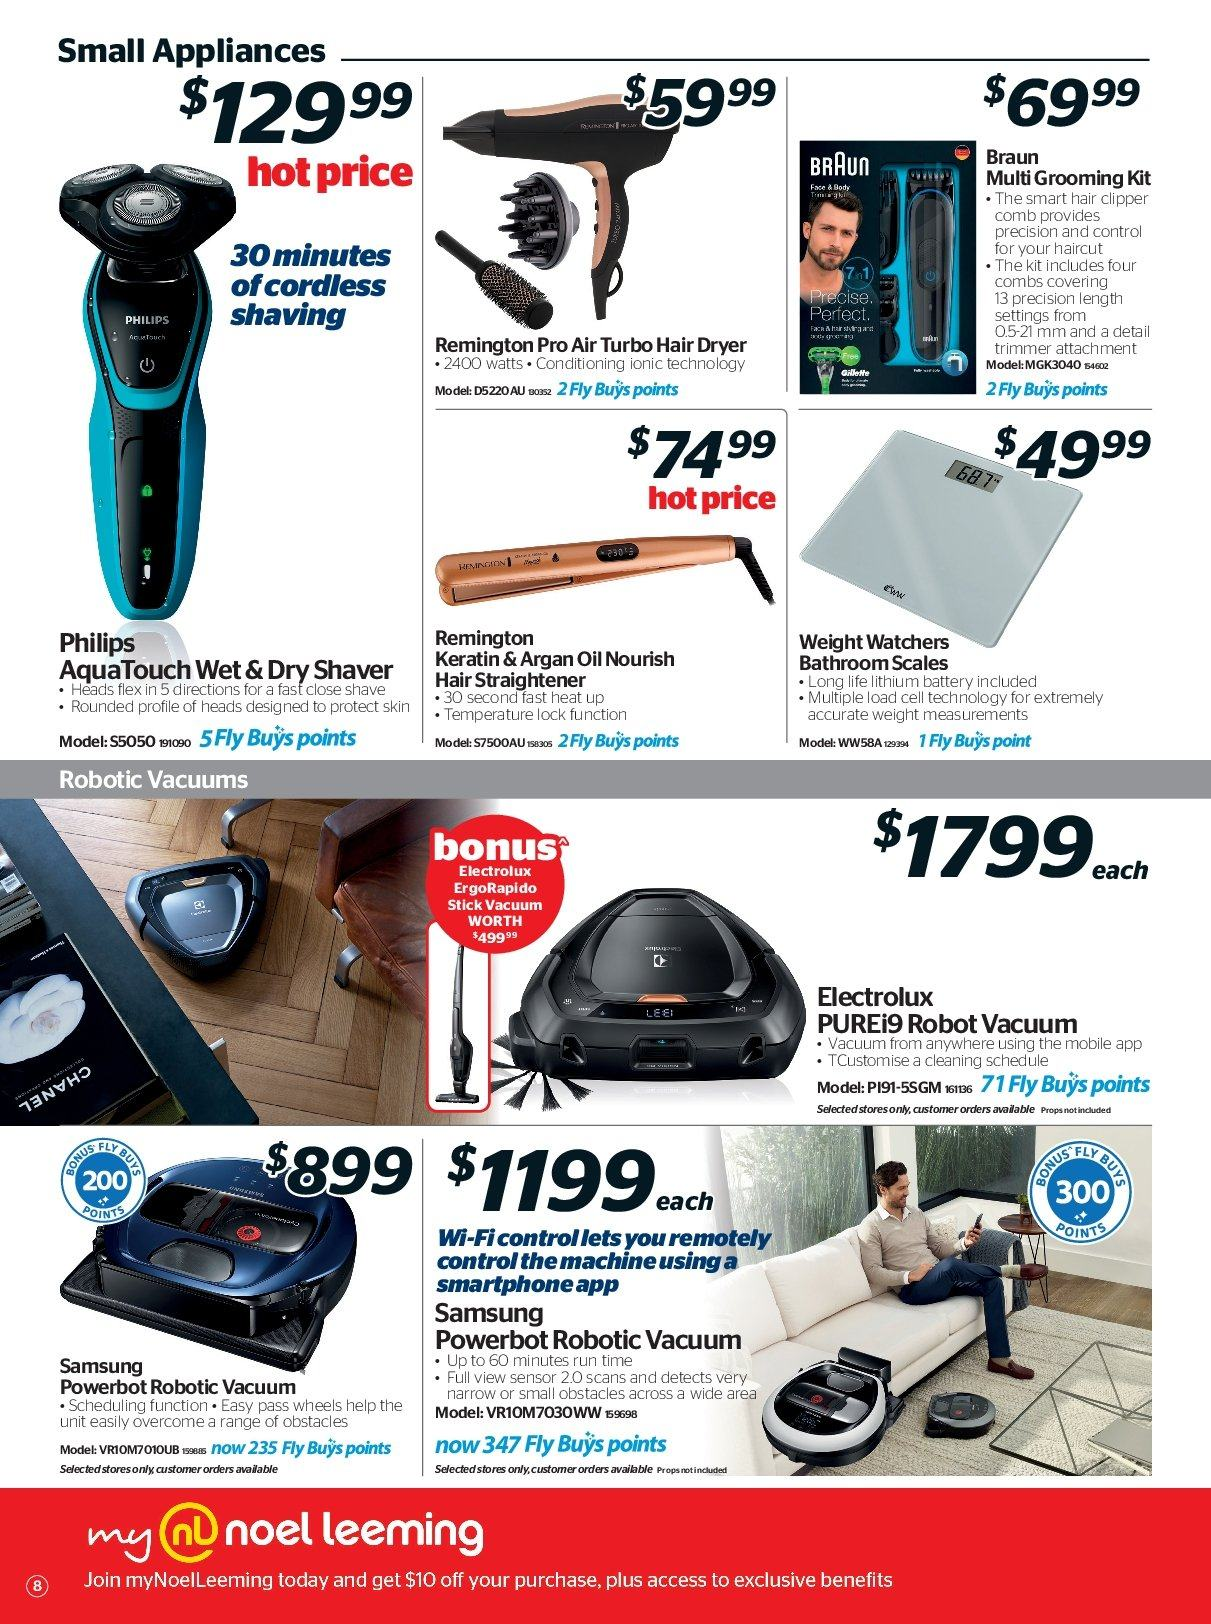 Noel Leeming mailer - 16.05.2018 - 29.05.2018 - Sales products - bathroom, battery, braun, dryer, electrolux, remington, robot, samsung, stick, trimmer, vacuum, keratin, philips, hair dryer, shaver, smartphone, scales, hair clipper, straightener, oil. Page 8.